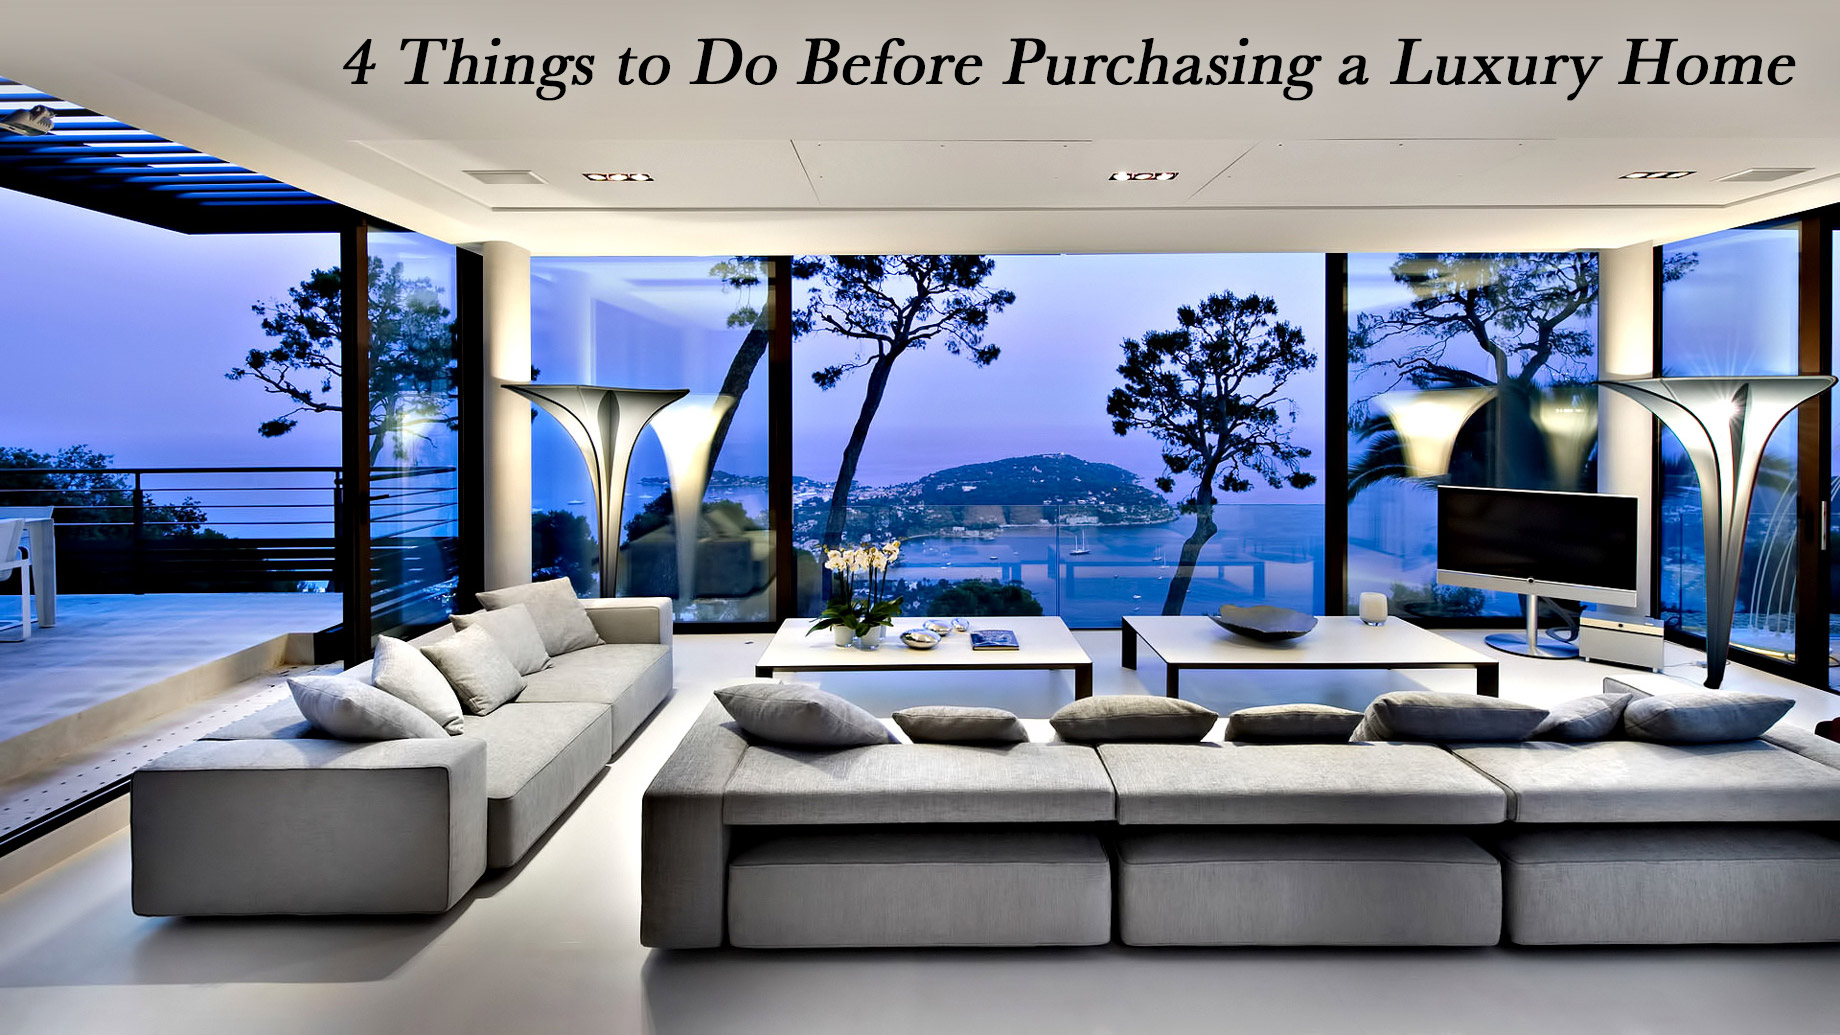 4 Things to Do Before Purchasing a Luxury Home